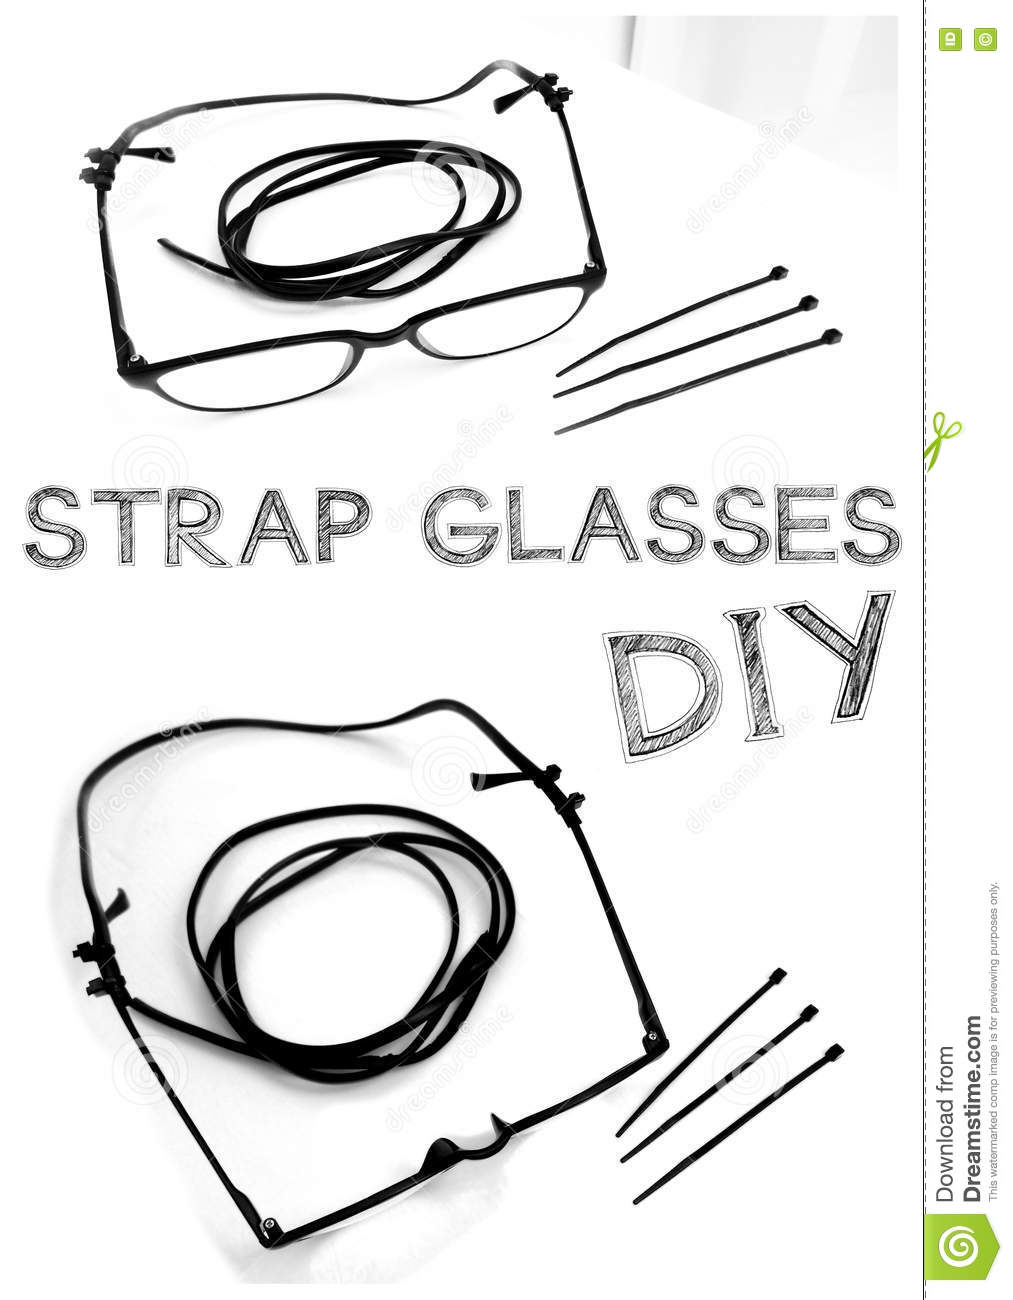 Strap glasses diy idea stock image image of object idea 73692839 strap glasses do it yourself my idea made from power cables or small talk and cable tie have word freehand sketch solutioingenieria Gallery